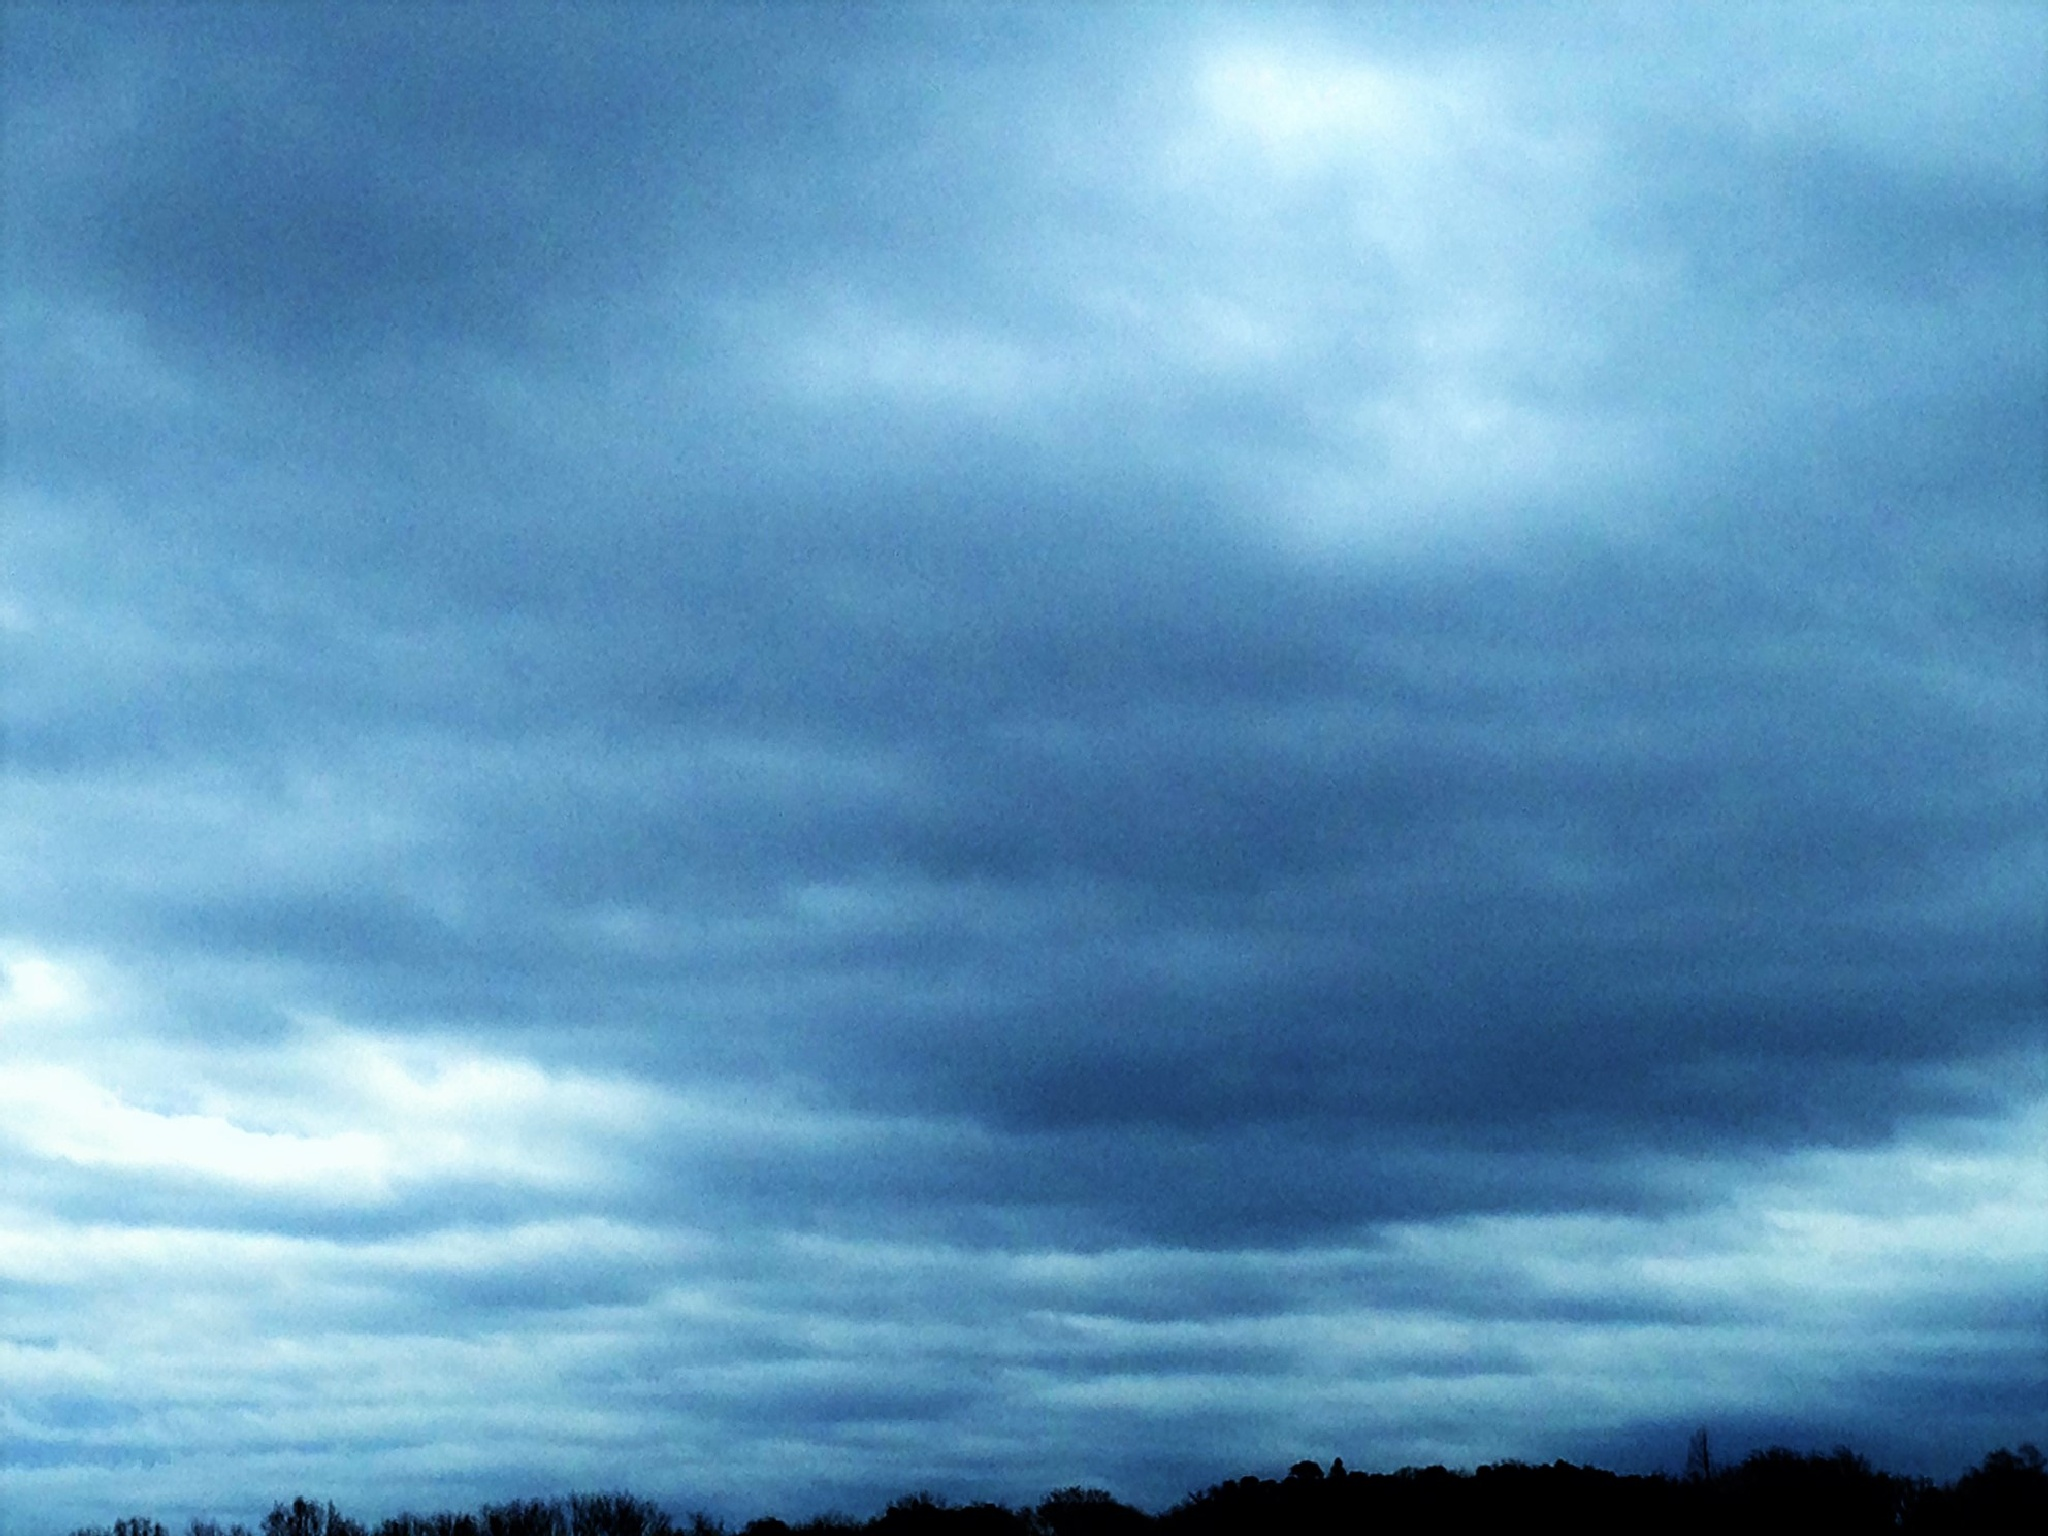 clouds over country 32.5 by thwdrehbuch